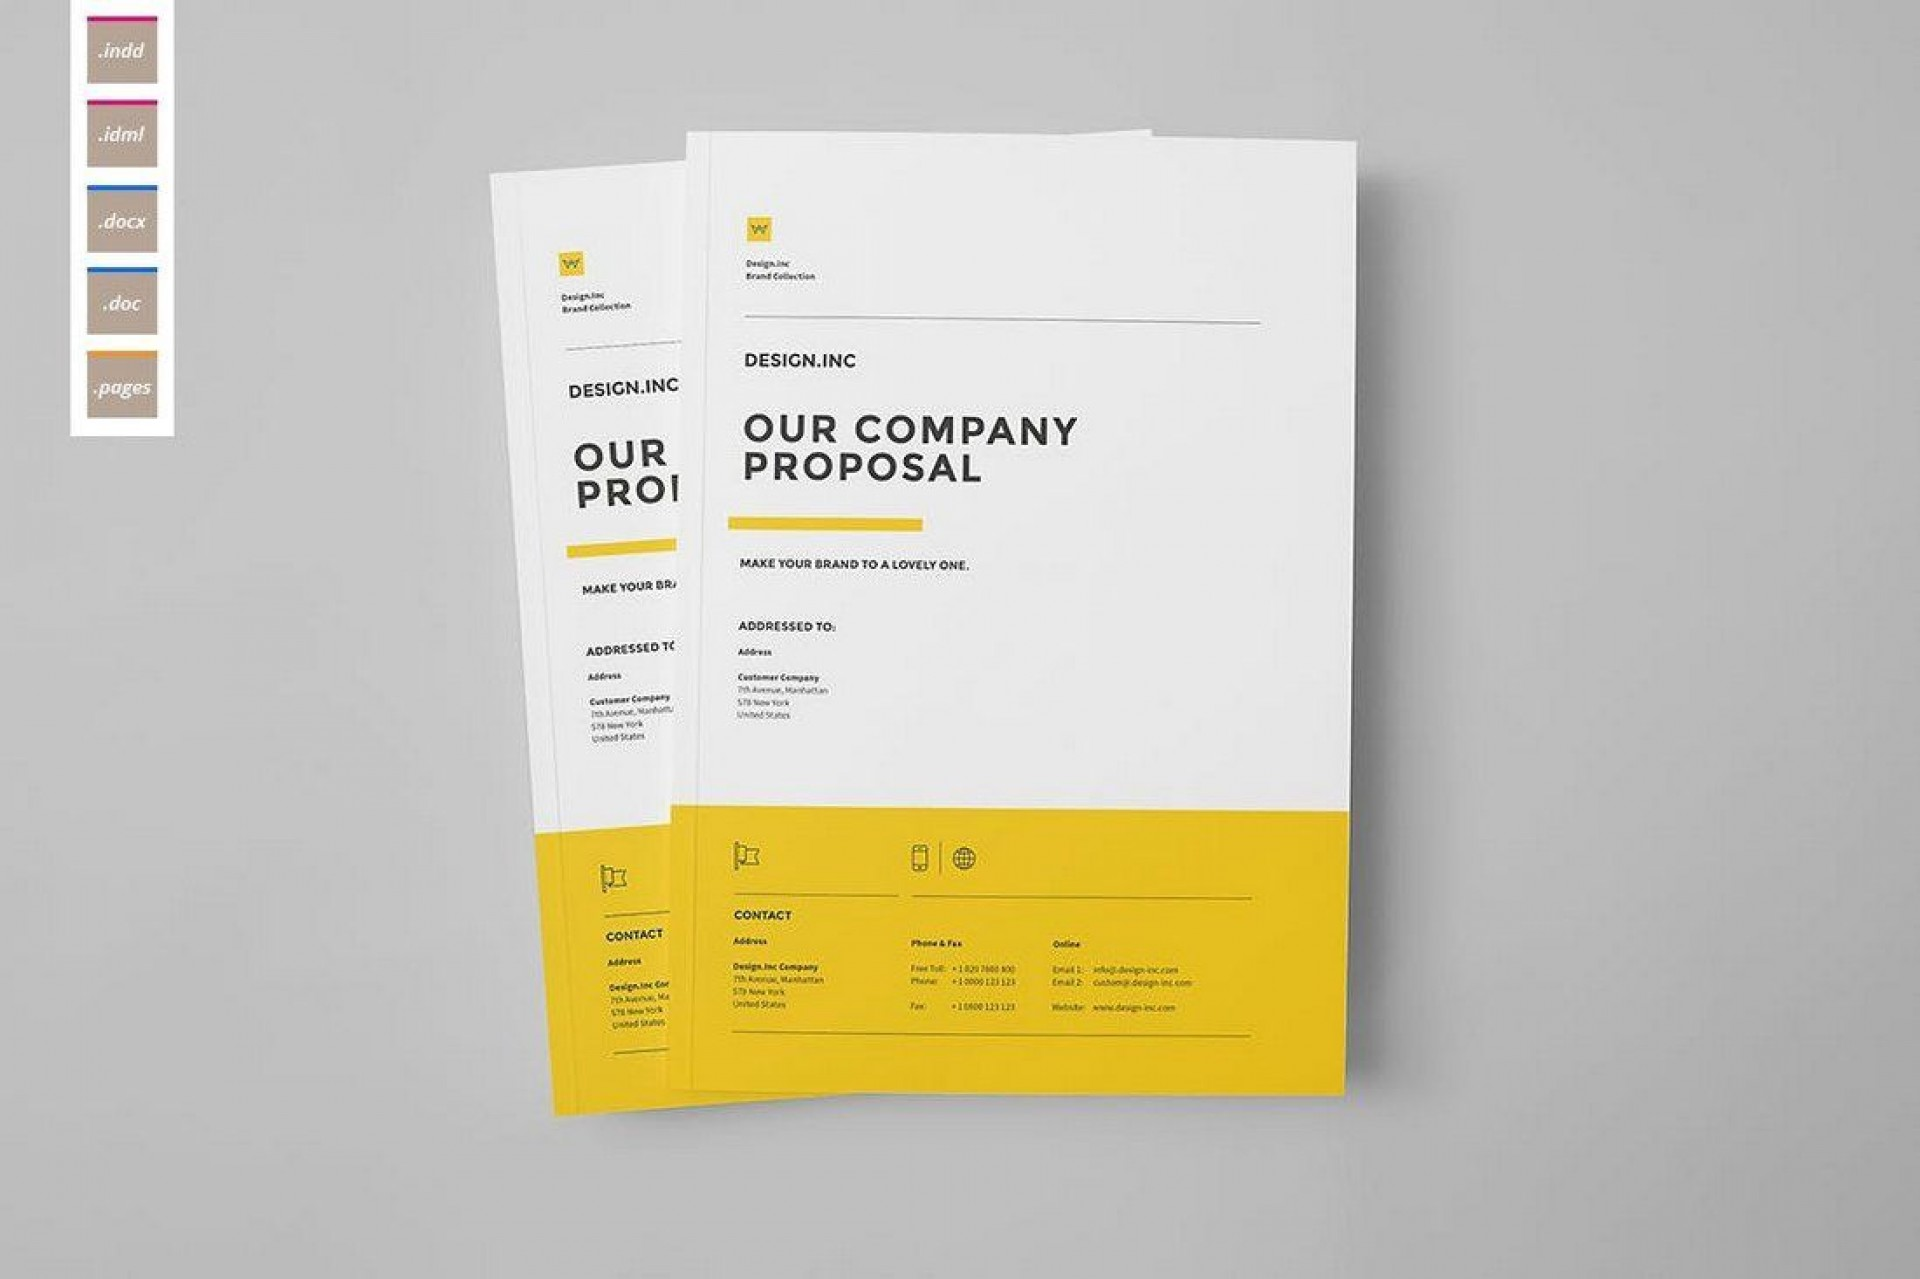 009 Amazing Microsoft Word Brochure Template High Def  Templates 2010 Tri Fold A4 2007 Free Download1920